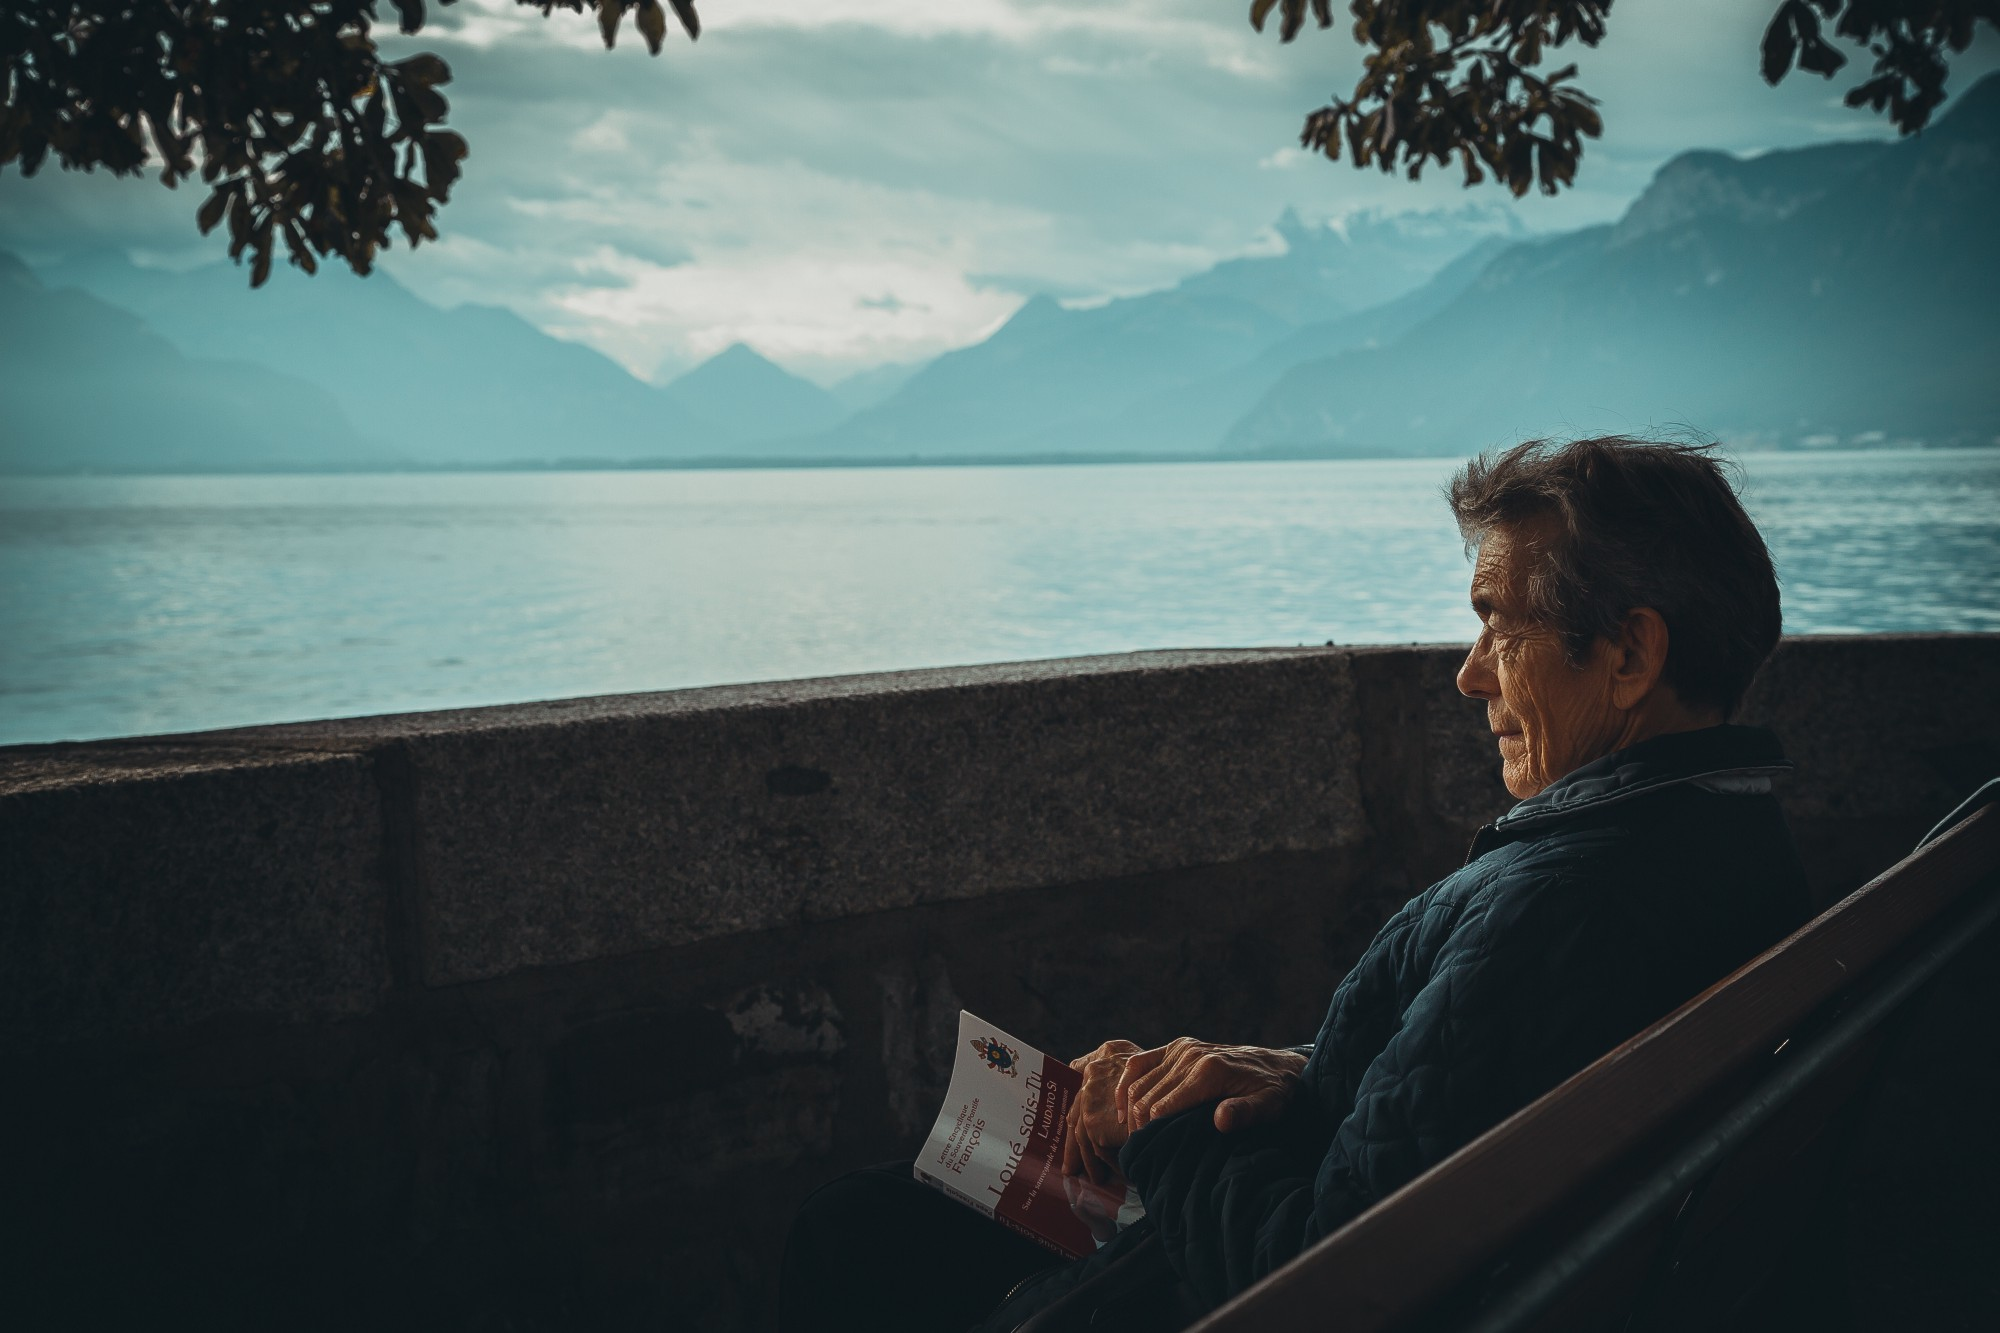 older man thinking while looking out at lake